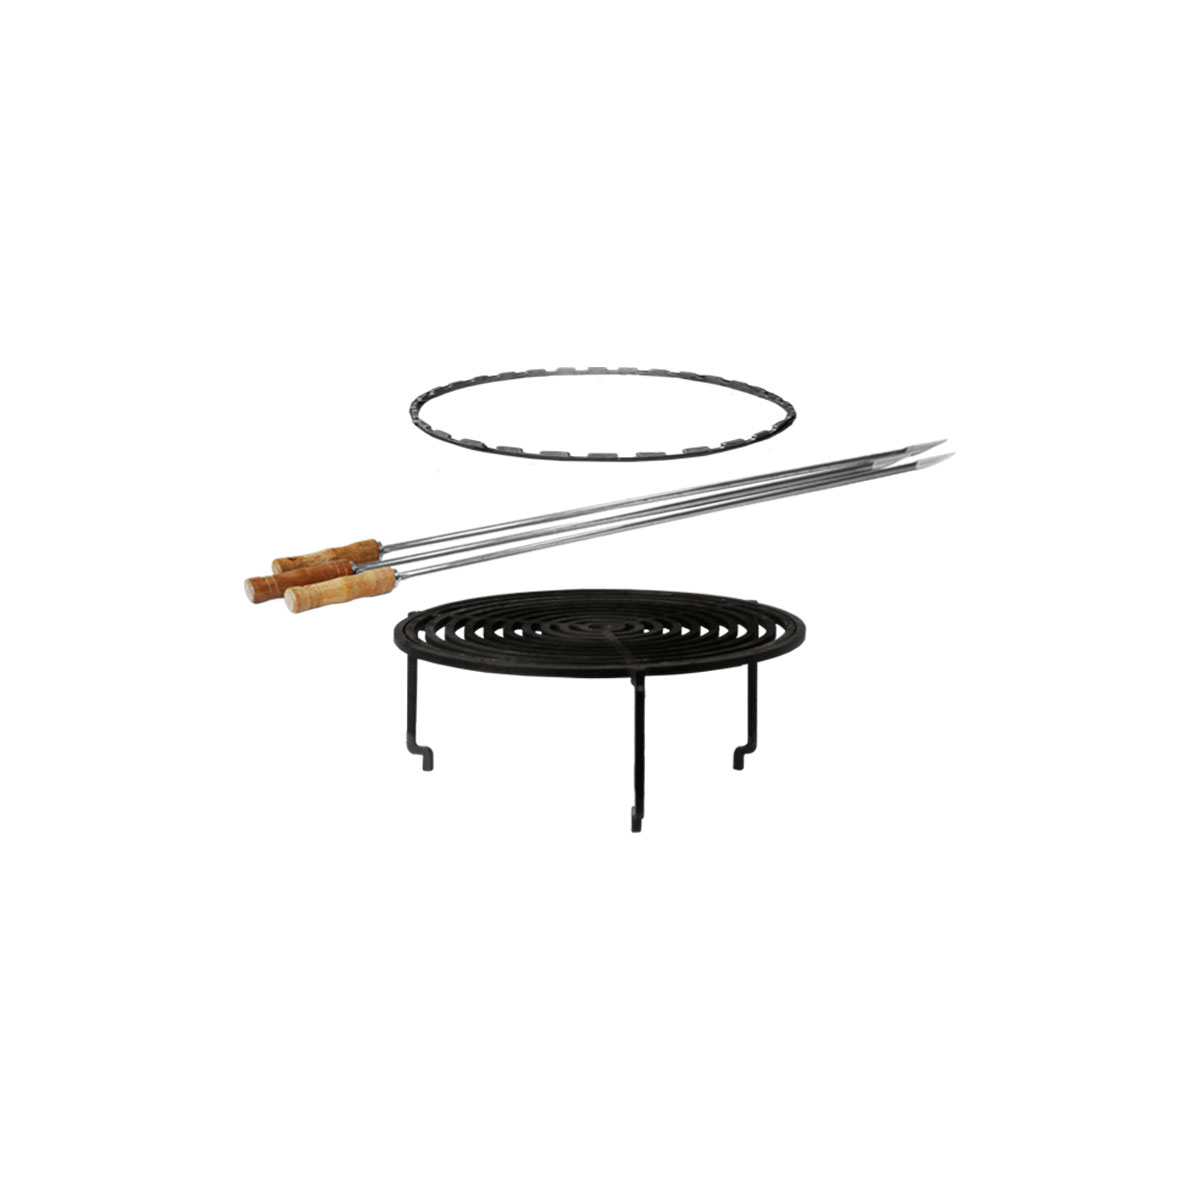 OFYR 85 Grill Accessories Set